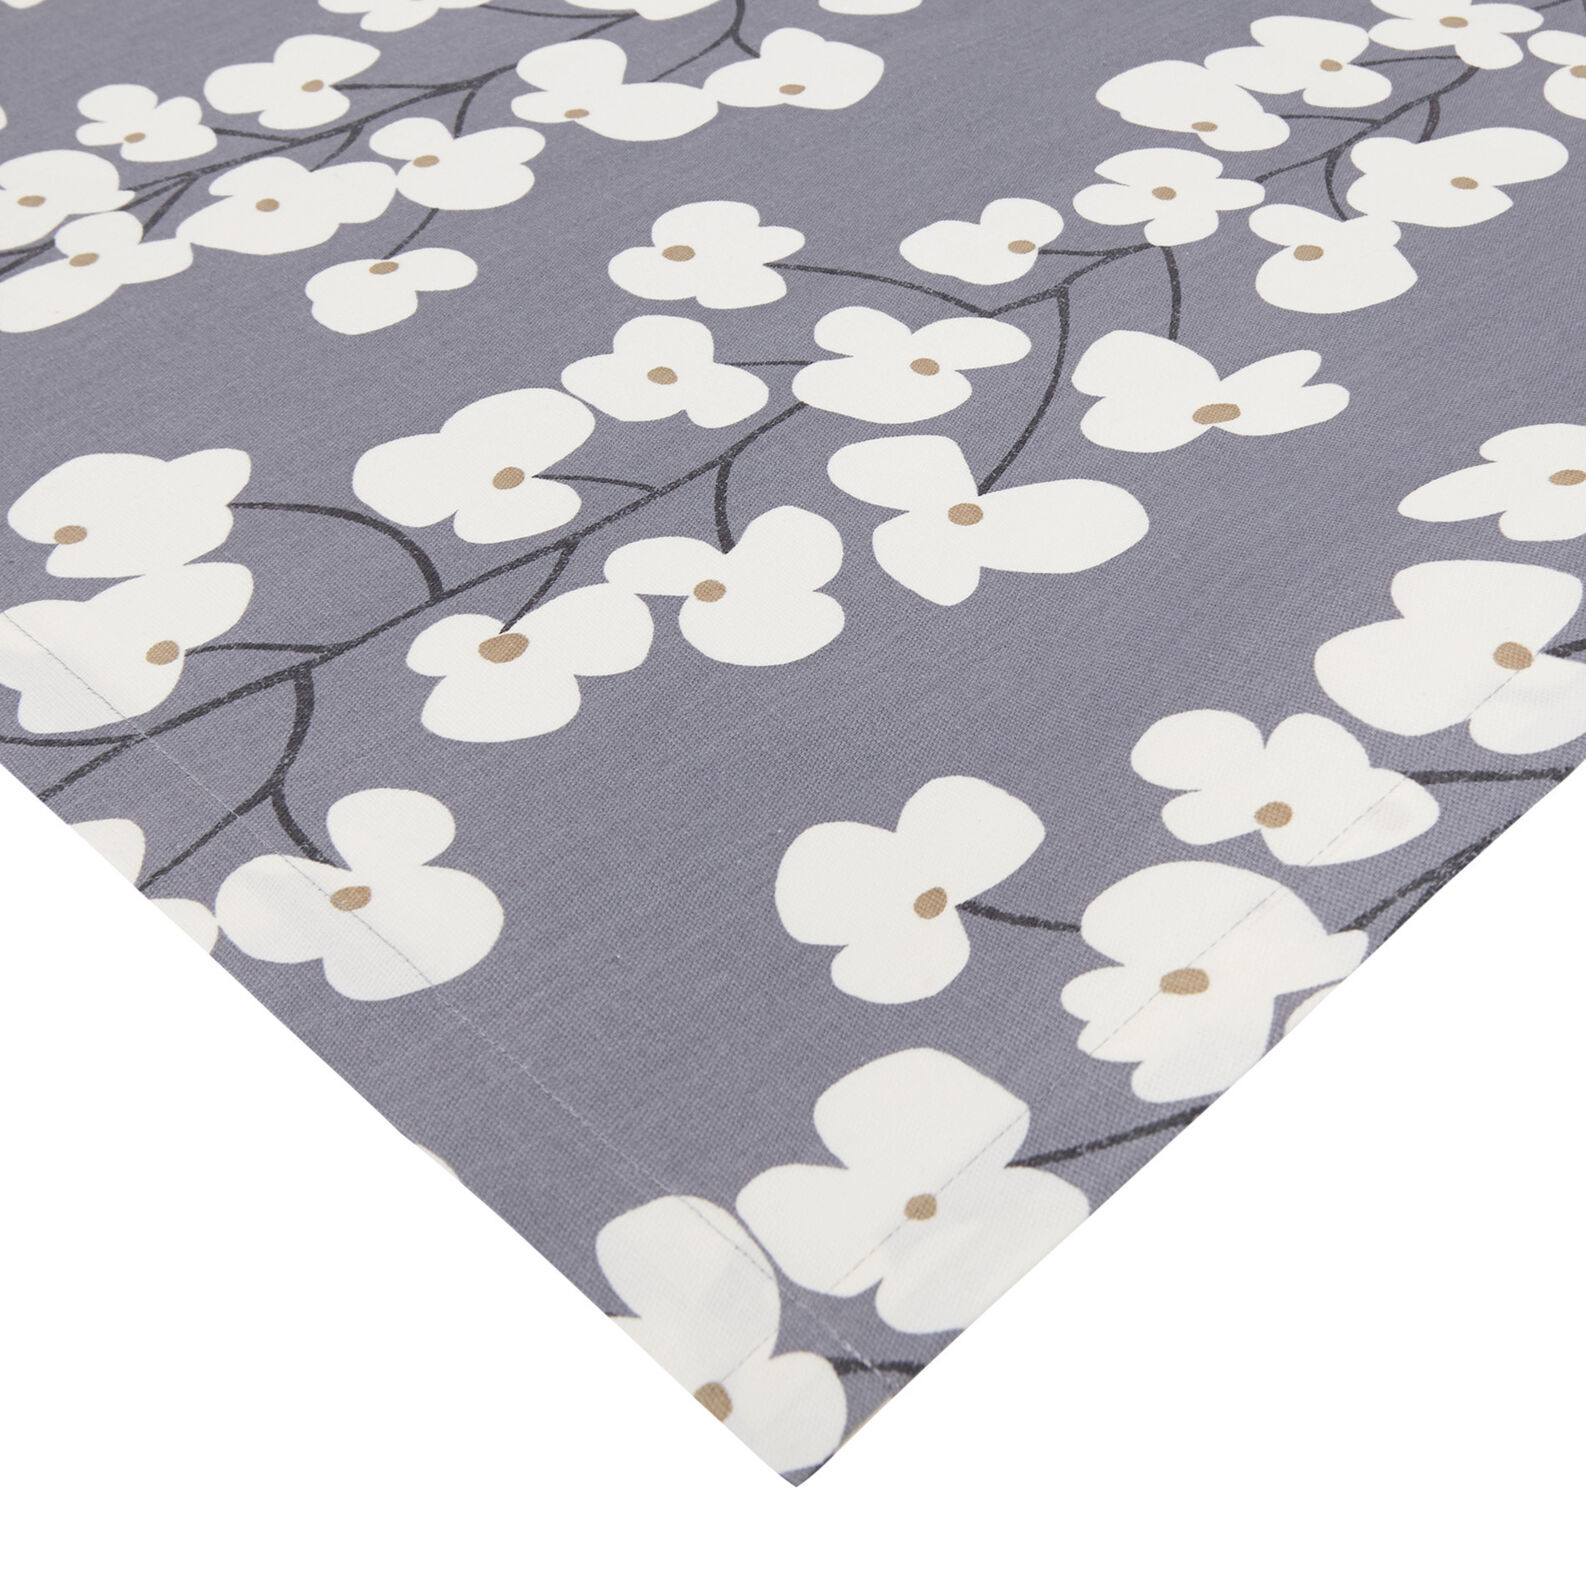 Cotton tablecloth with flowers print